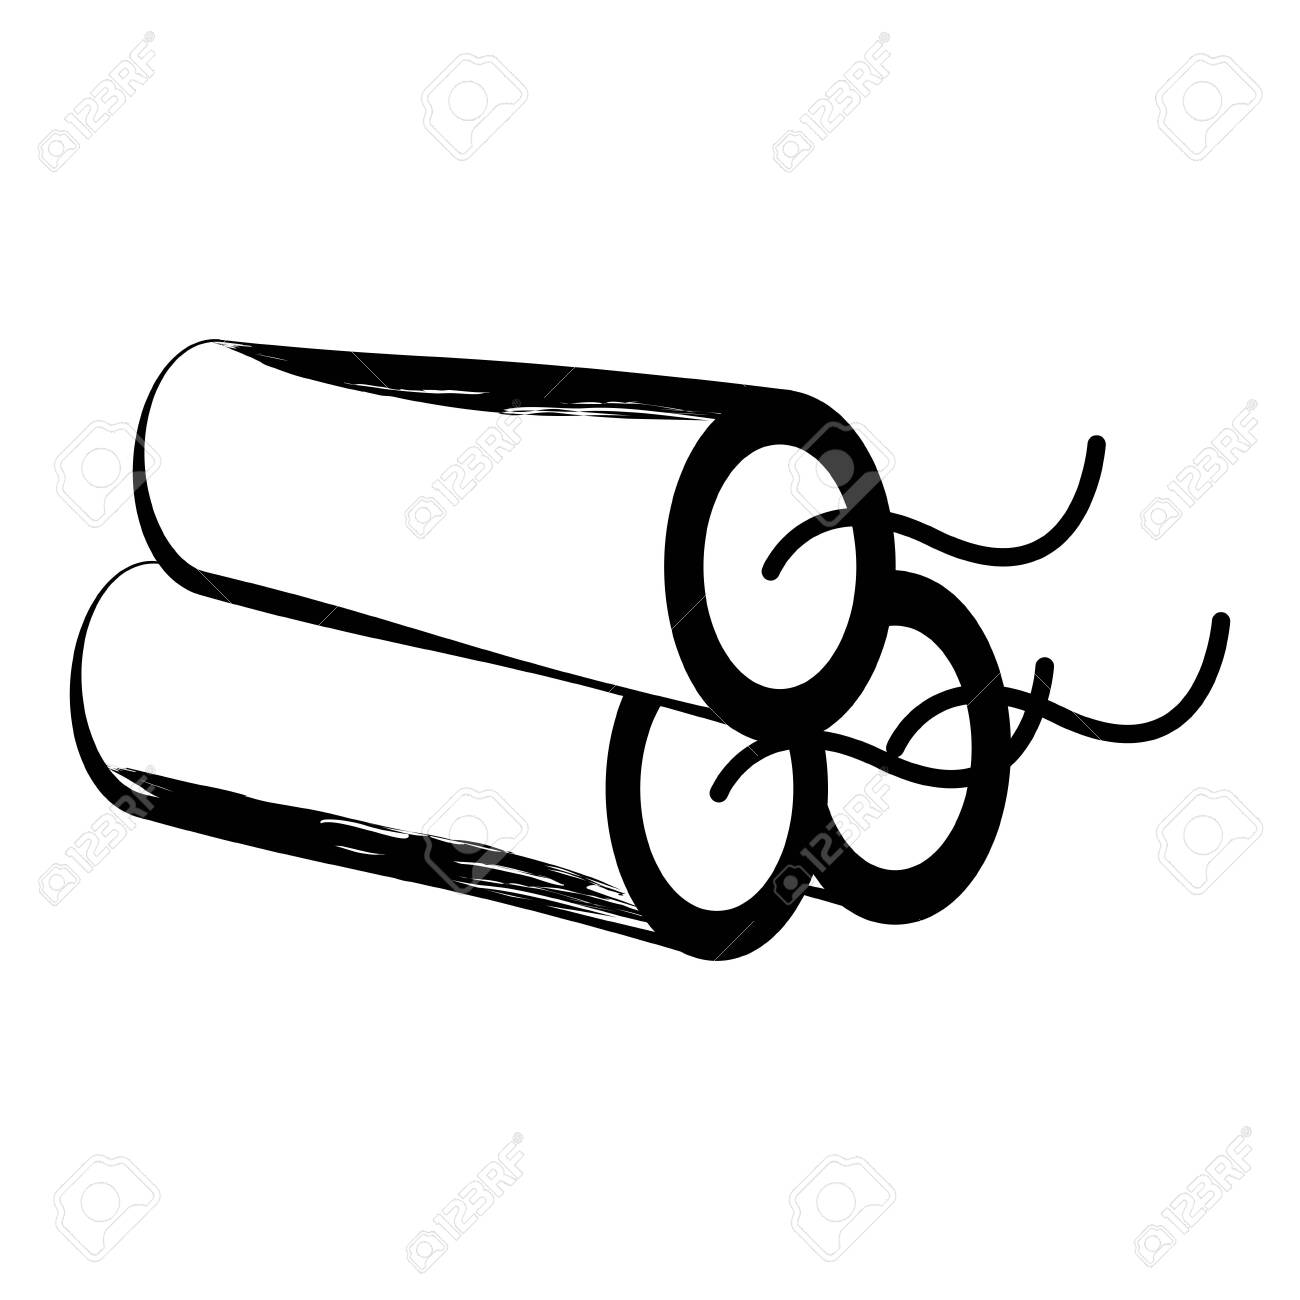 Isolated sketch of a dynamite. Vector illustration design - 124440097